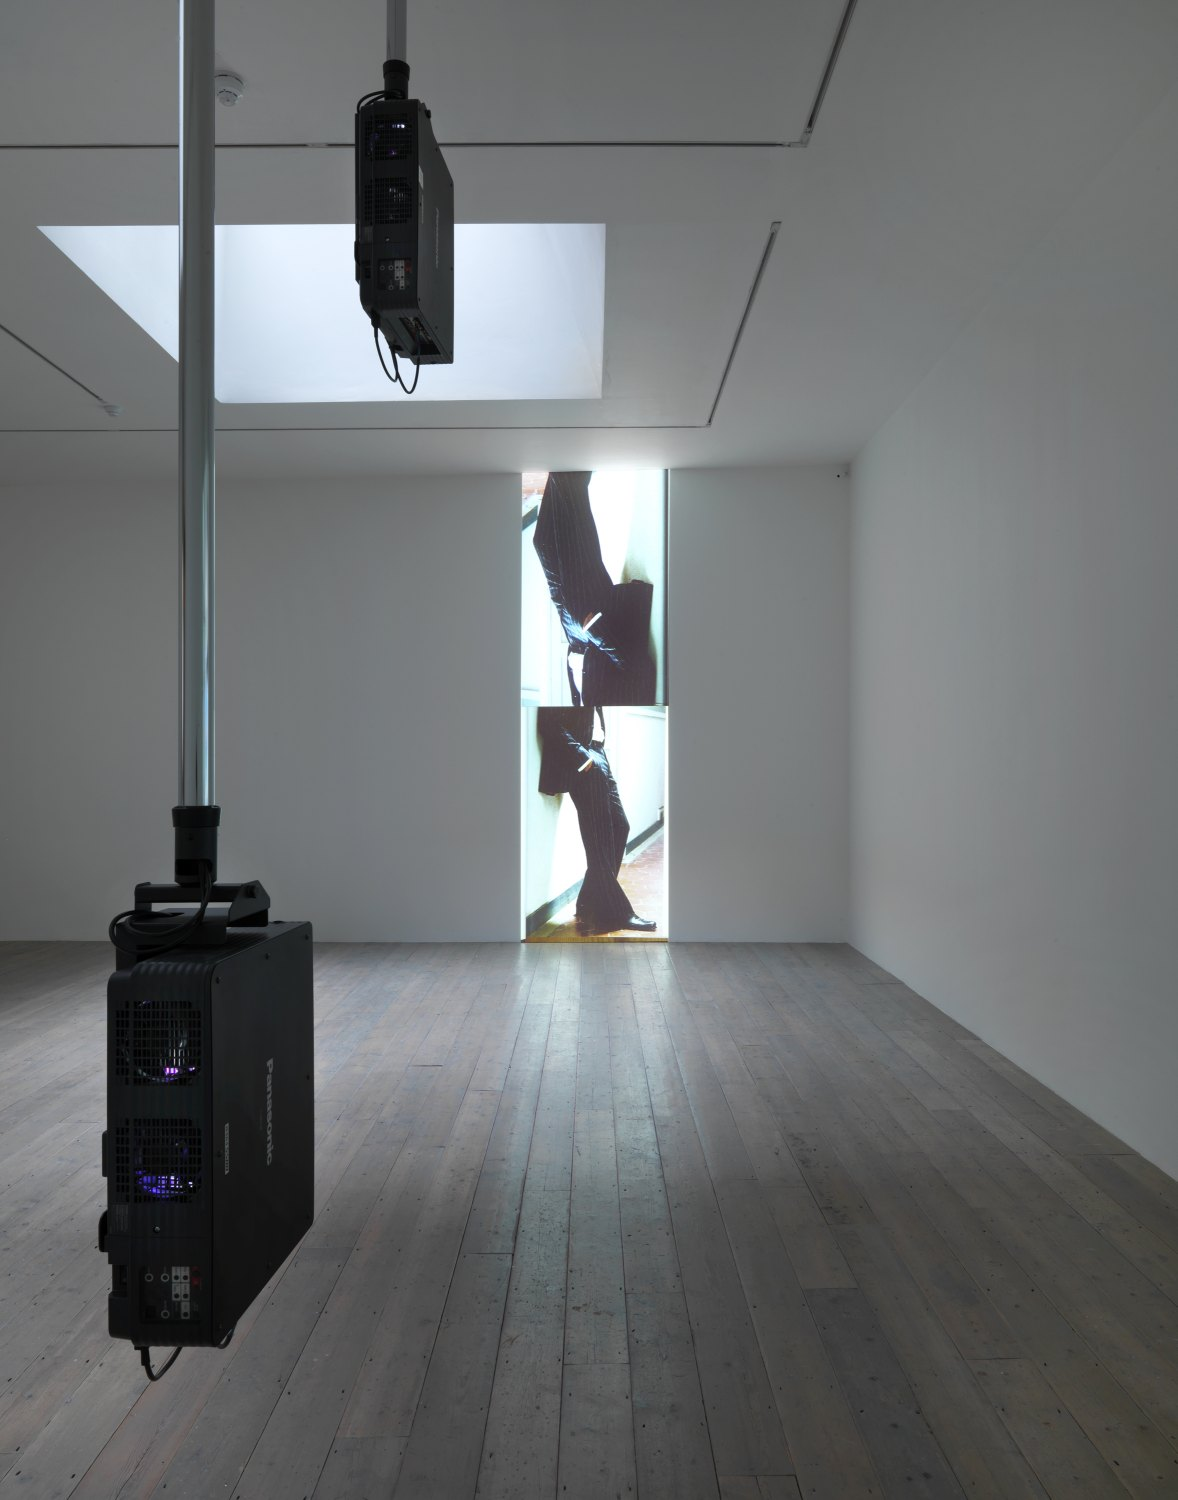 Hilary Lloyd   Trousers, 2010    2 pioneer PT-DW5100U projectors, 2 pioneer DVD-V7300D players, 4 Unicol suspension units, dimensions variable